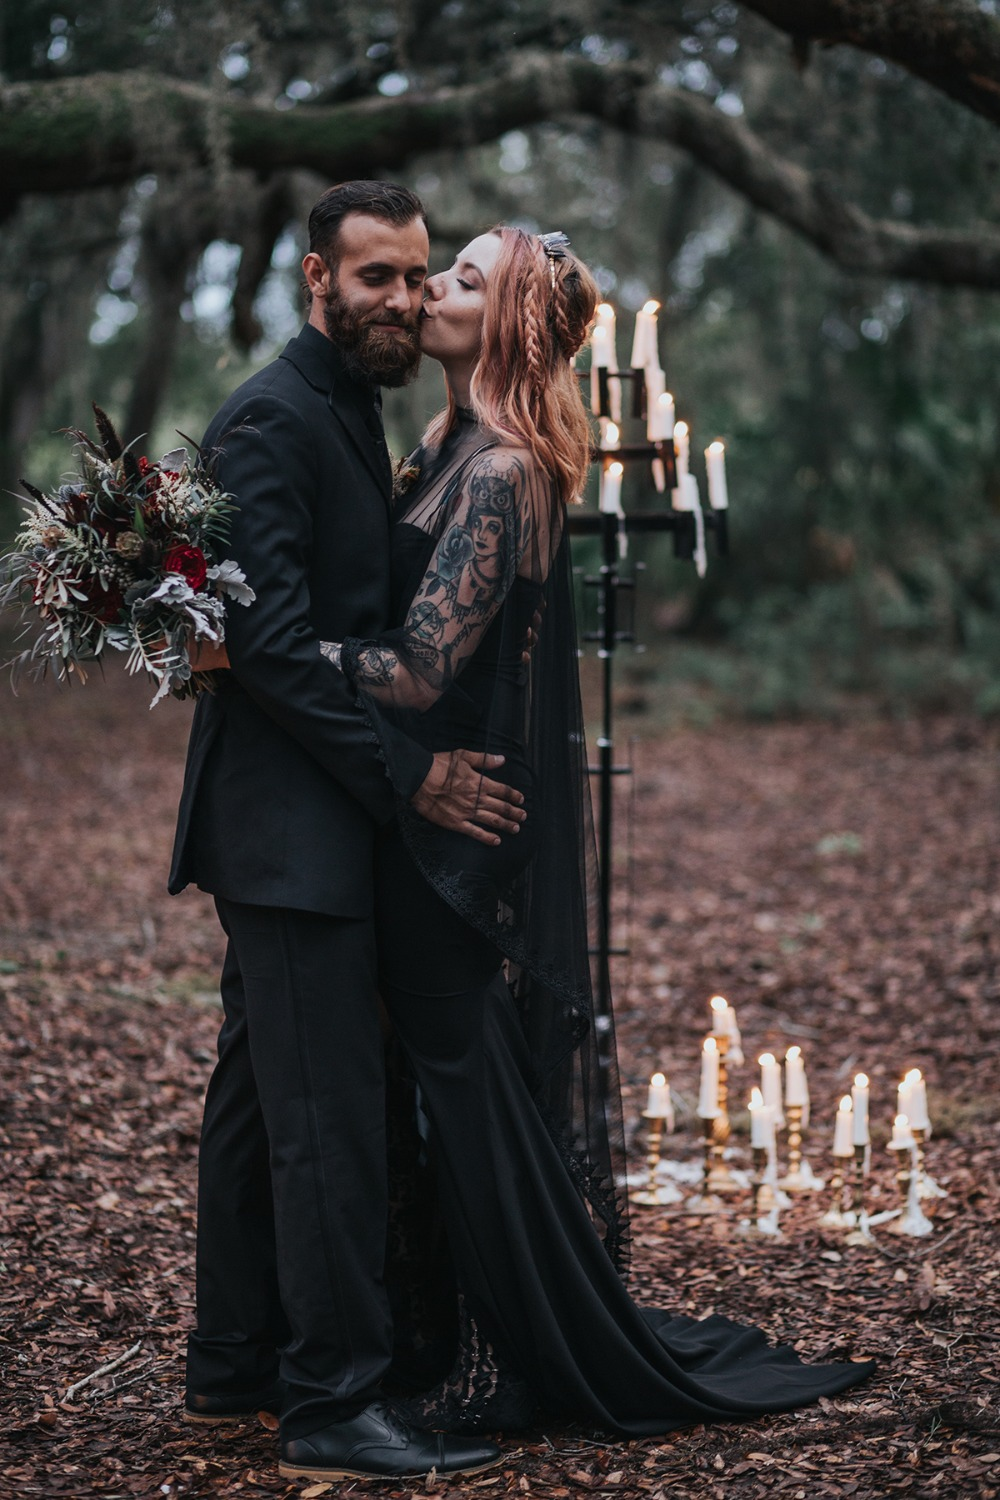 dark romance wedding ceremony